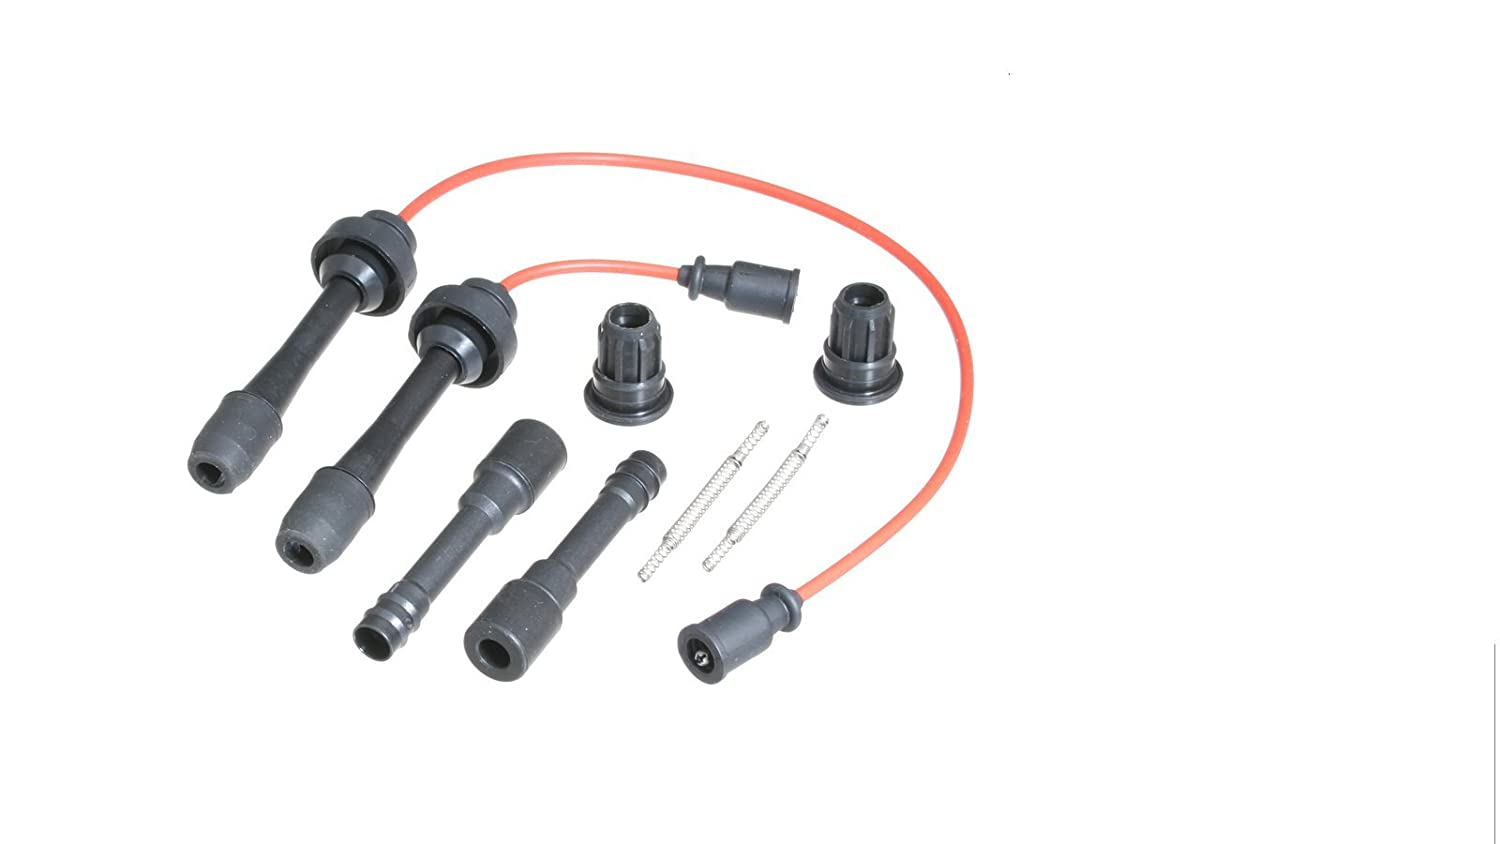 Tbk Tune Up Kit Mazda Protege 5 20l 2002 To 2003 626 Fuel Filter Location Includes Oiol Air Pcv Valve With Grommet Ngk Spark Plugs And Ignition Wire Set